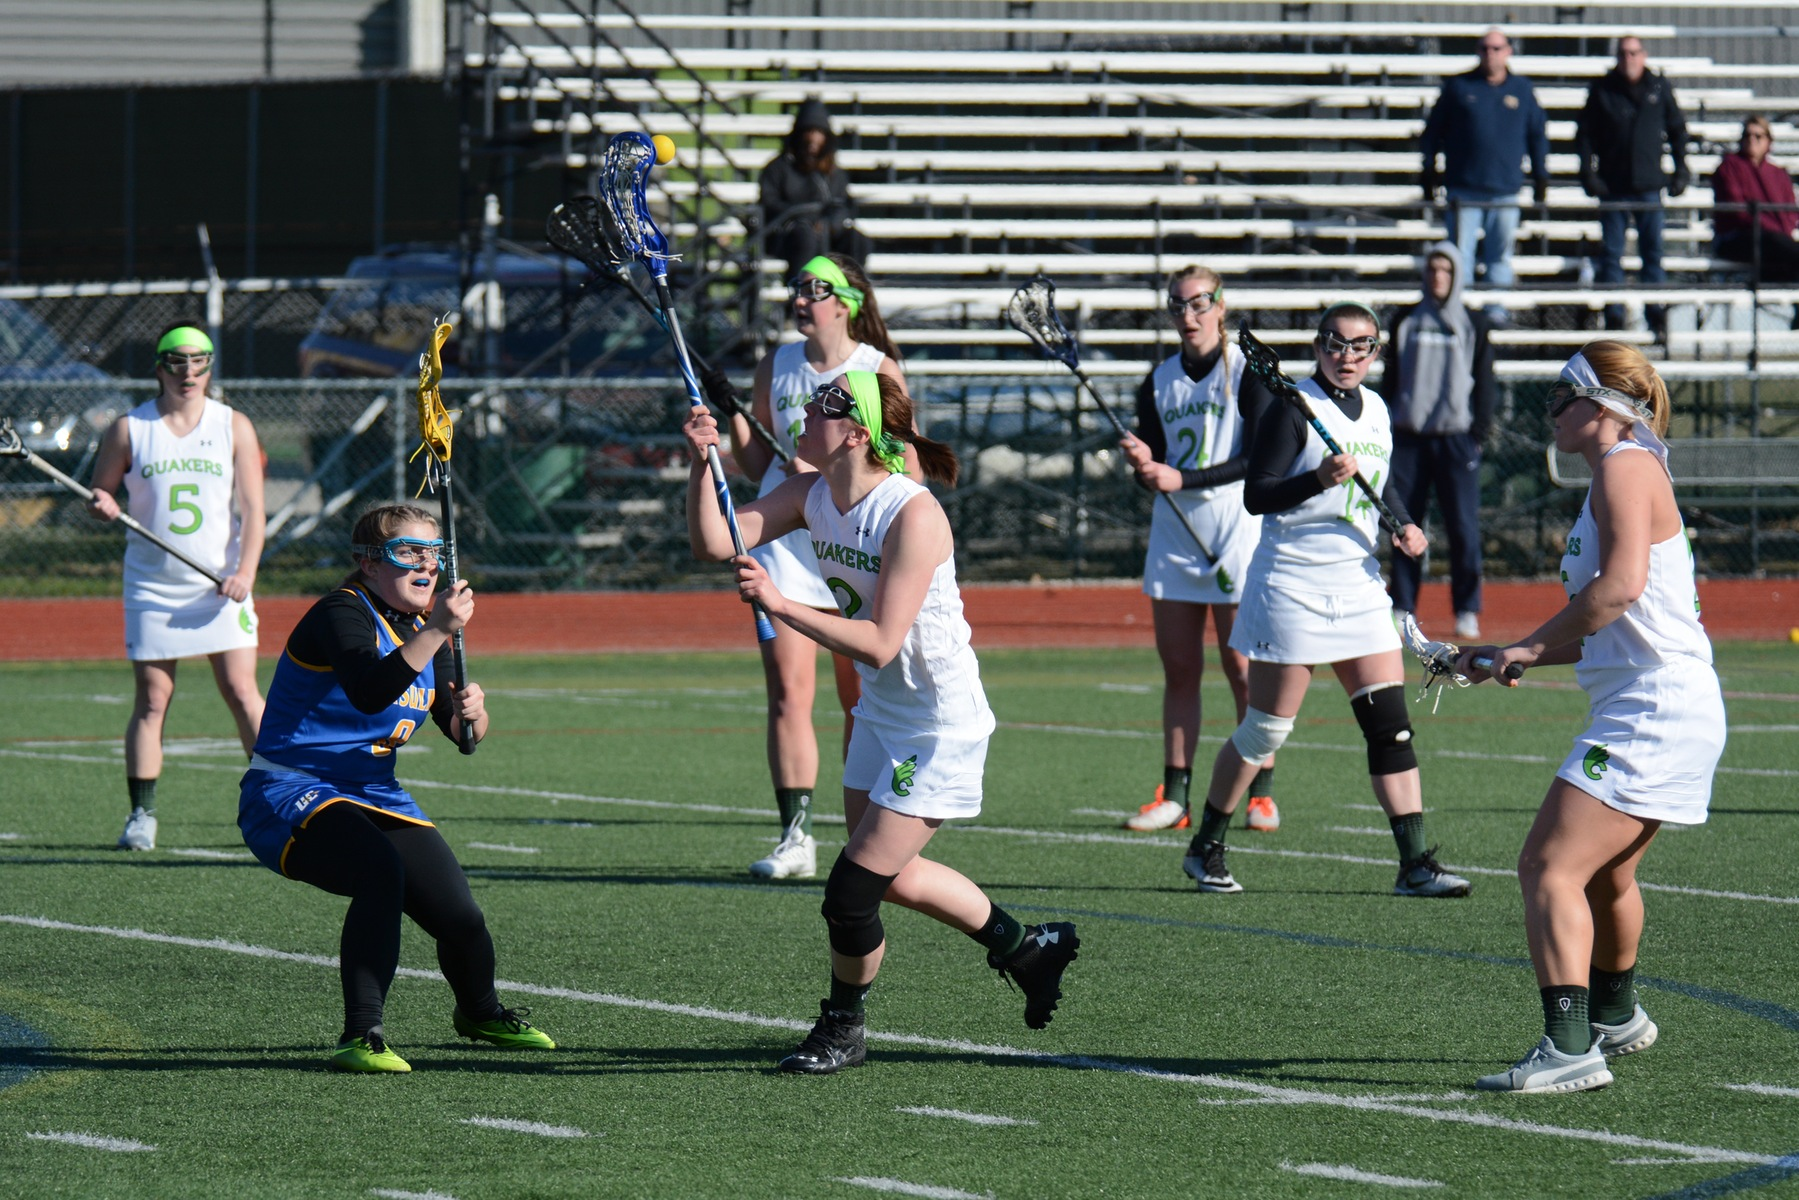 Women's Lacrosse Travels to Earlham for Quaker Bowl on Wednesday